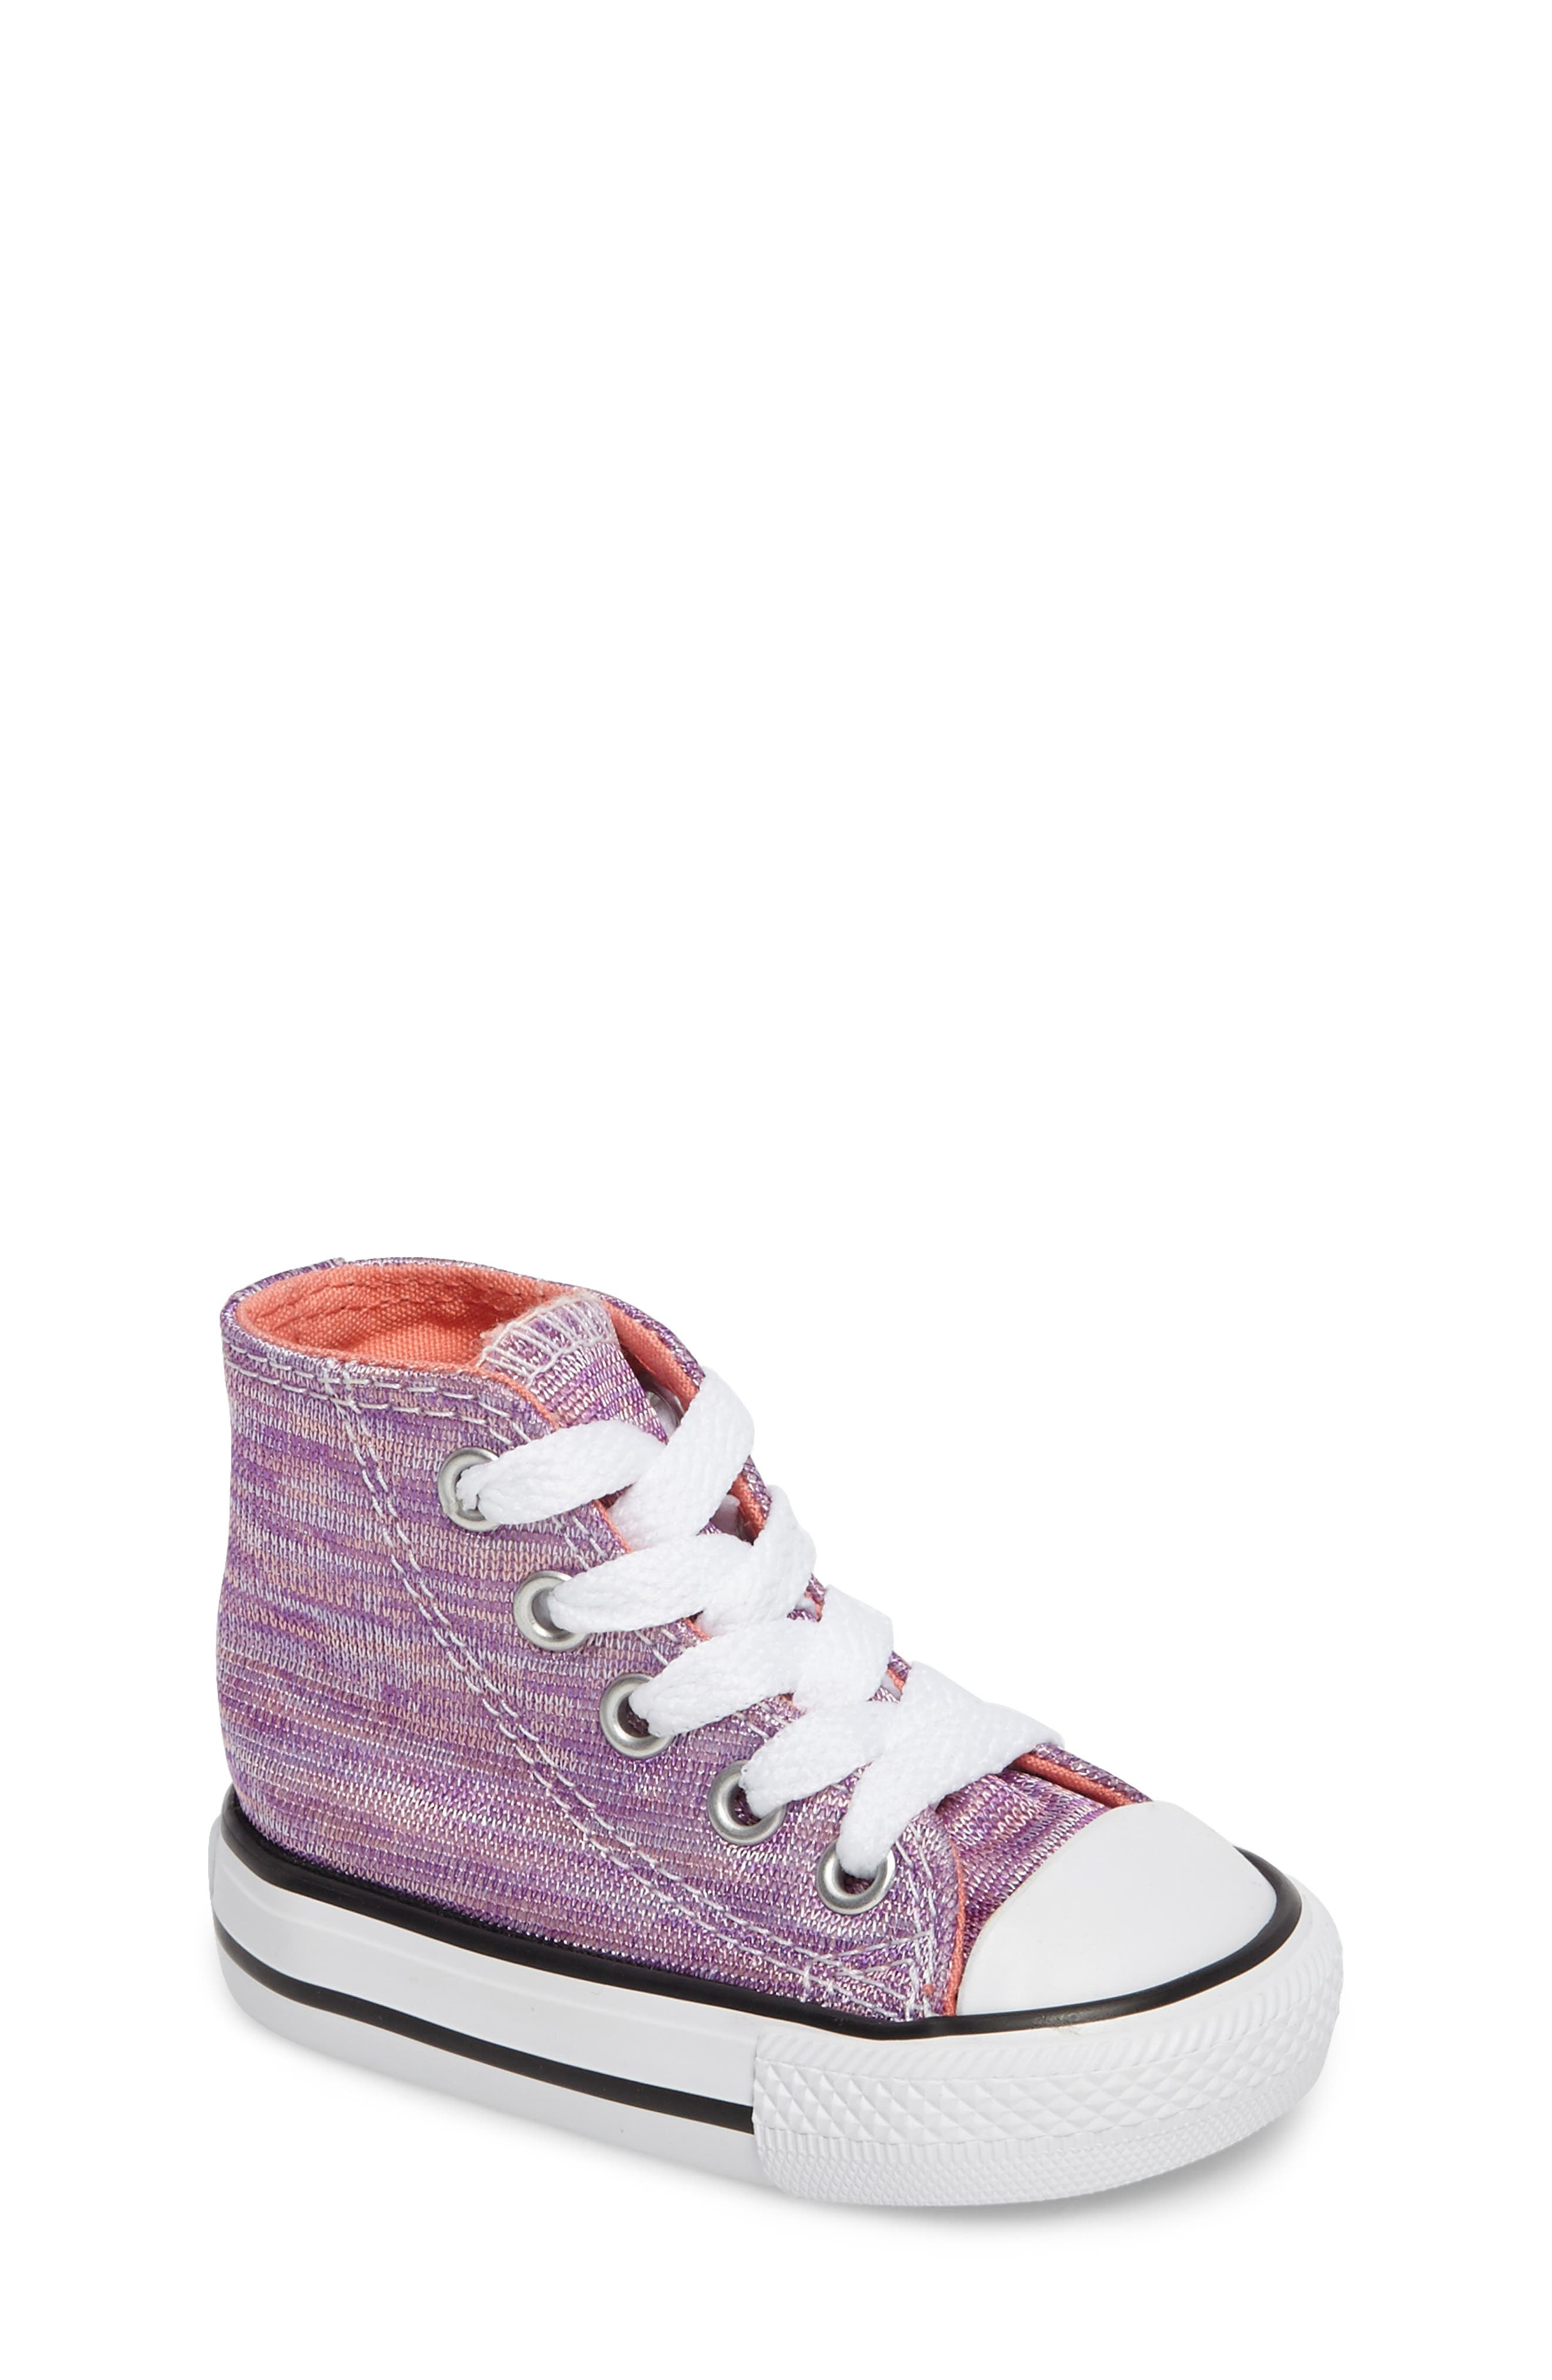 Alternate Image 1 Selected - Converse Chuck Taylor® All Star® Knit High Top Sneaker (Baby, Walker, Toddler & Little Kid)